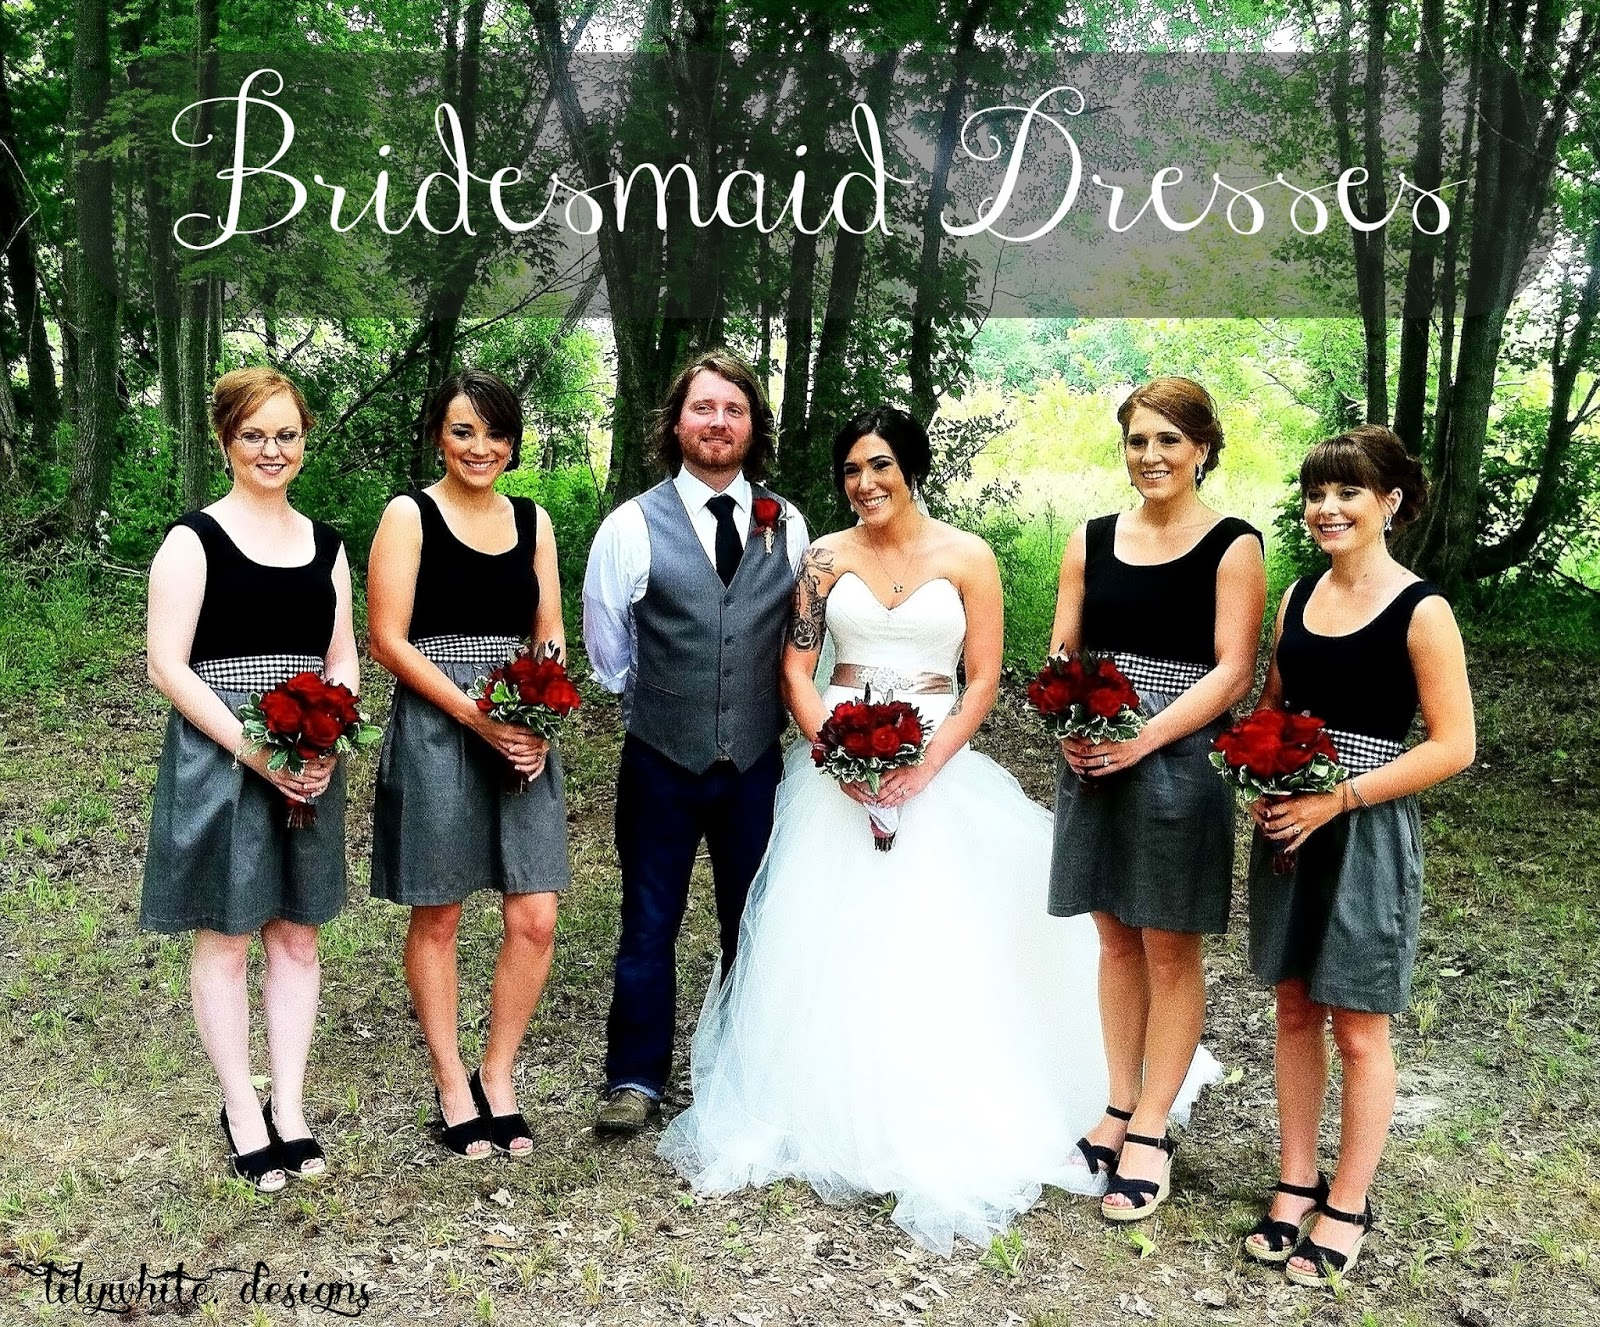 Wedding decoration black bridesmaid dresses outdoor wedding black bridesmaid dresses with short style email this blogthis share to twitter share to facebook share to ombrellifo Image collections